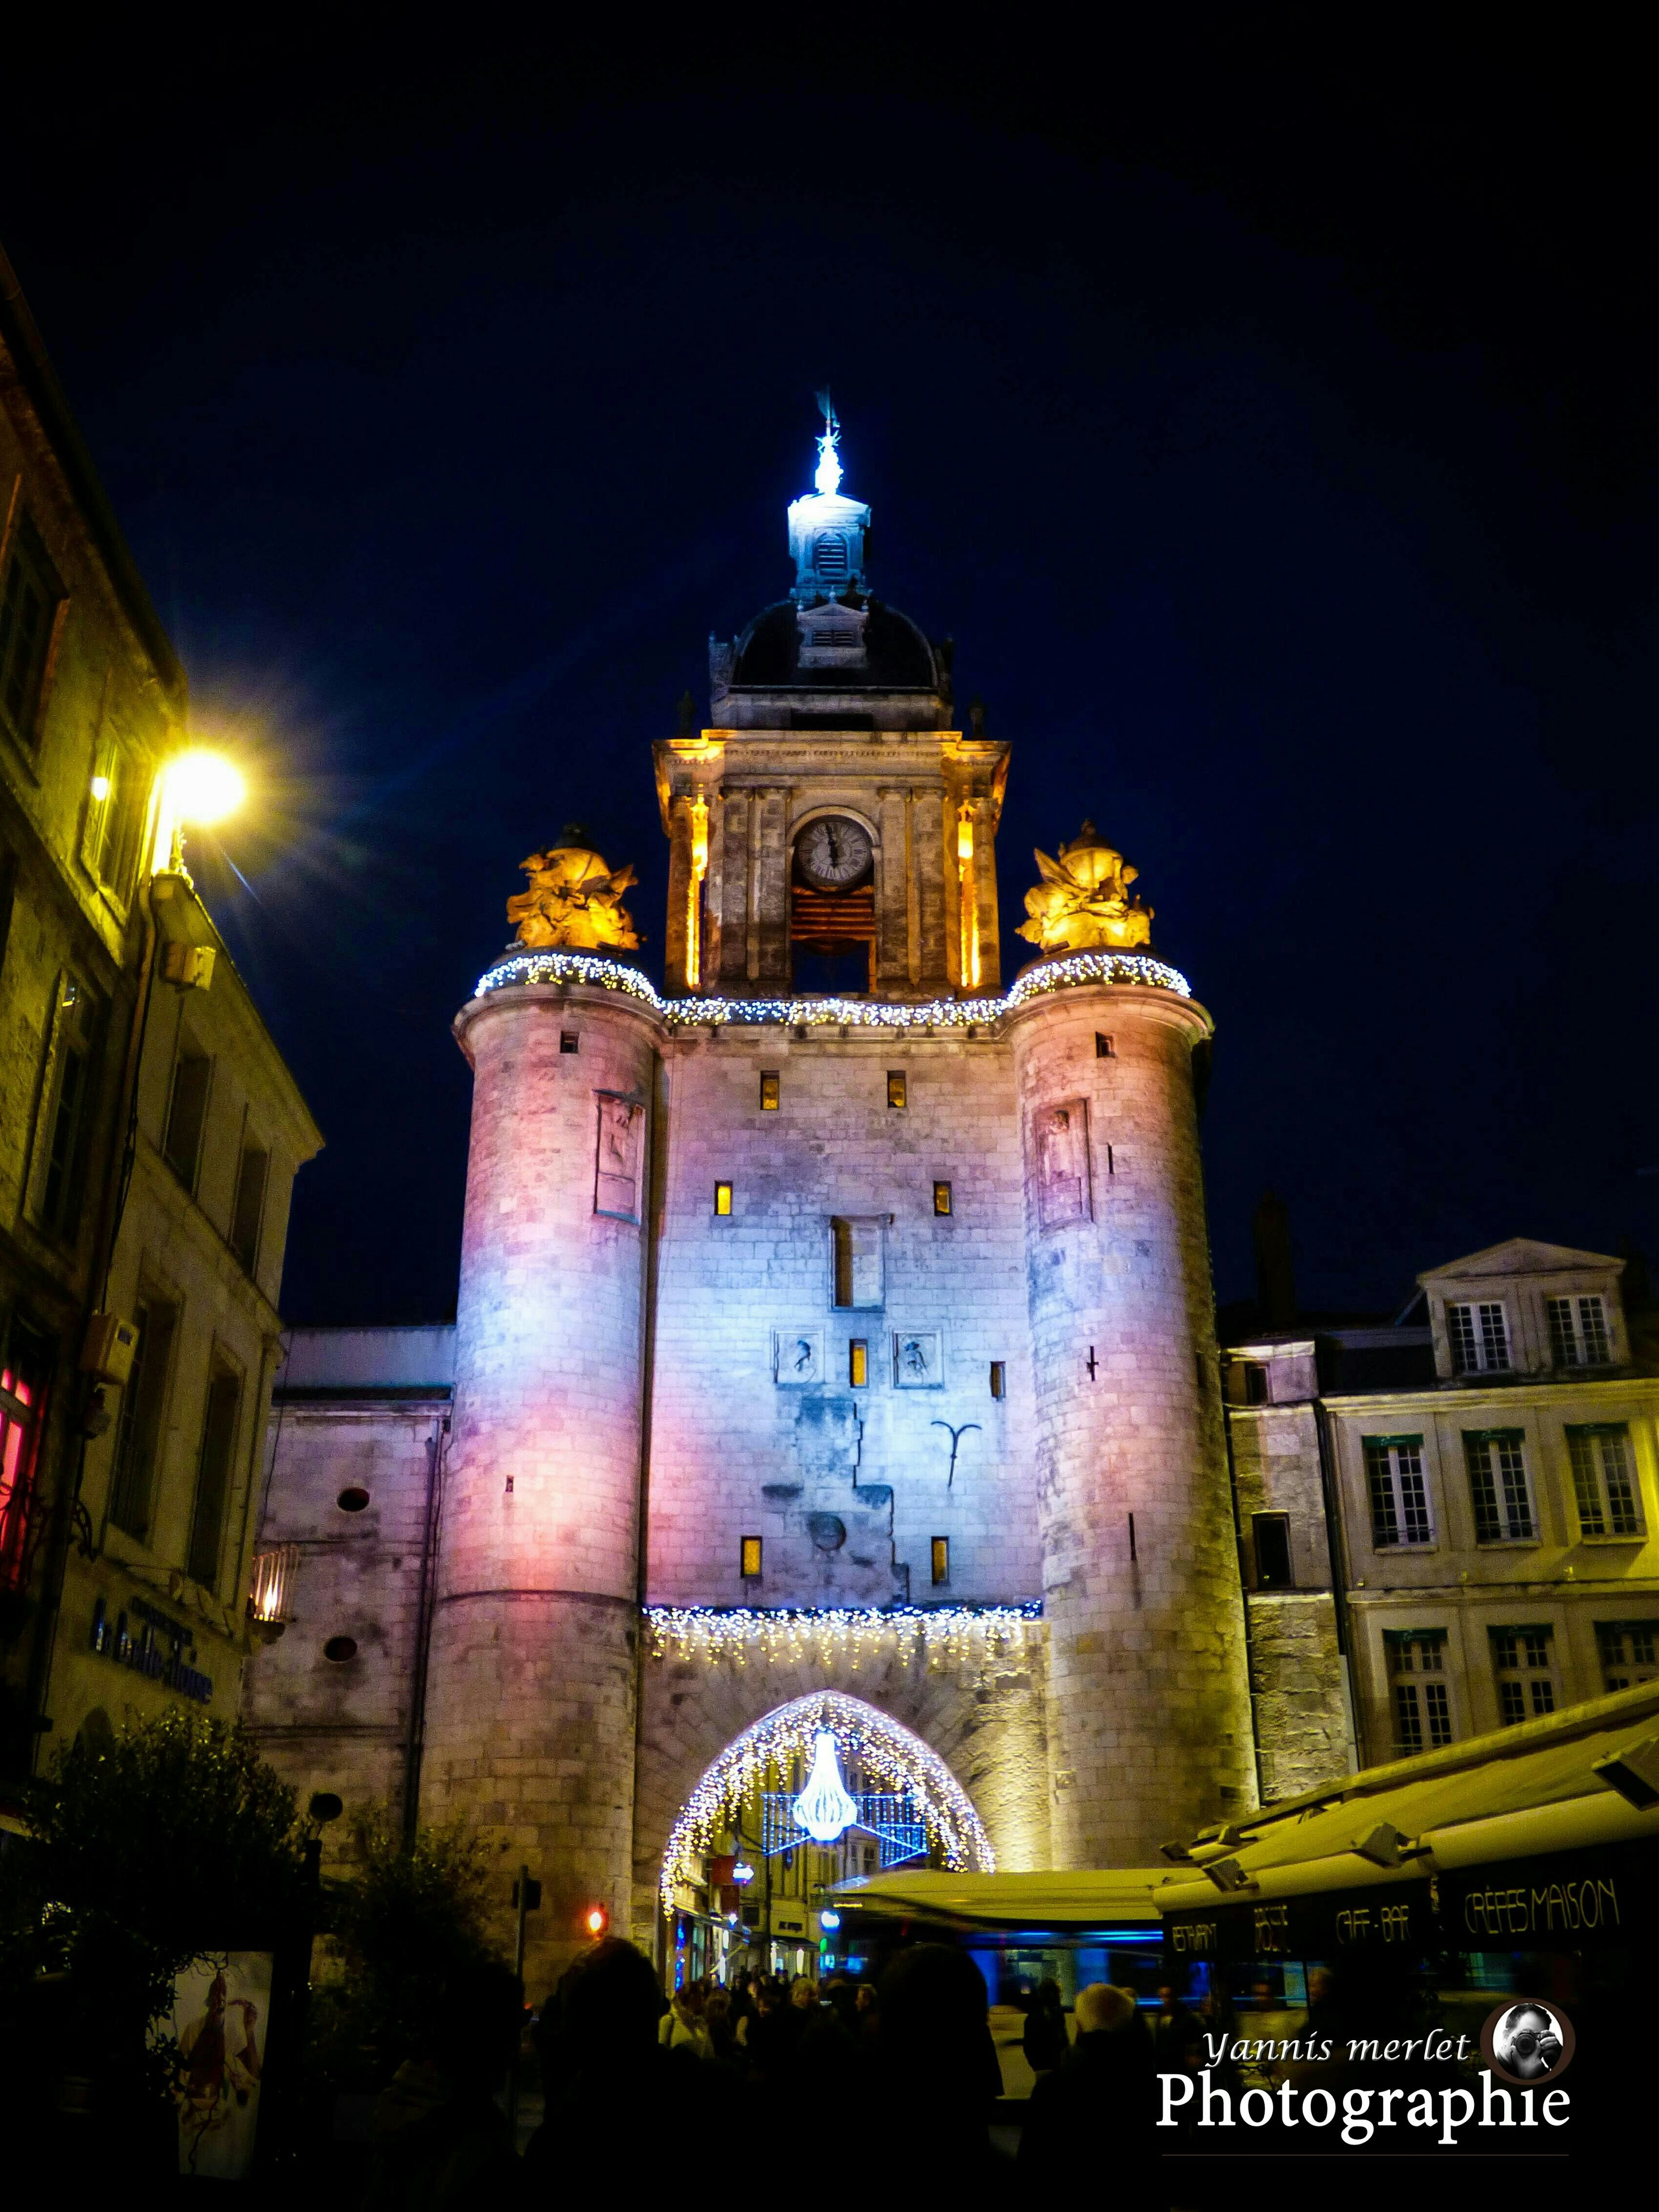 architecture, building exterior, built structure, night, illuminated, low angle view, city, tower, clock tower, arch, sky, clear sky, travel destinations, history, building, travel, famous place, transportation, facade, outdoors